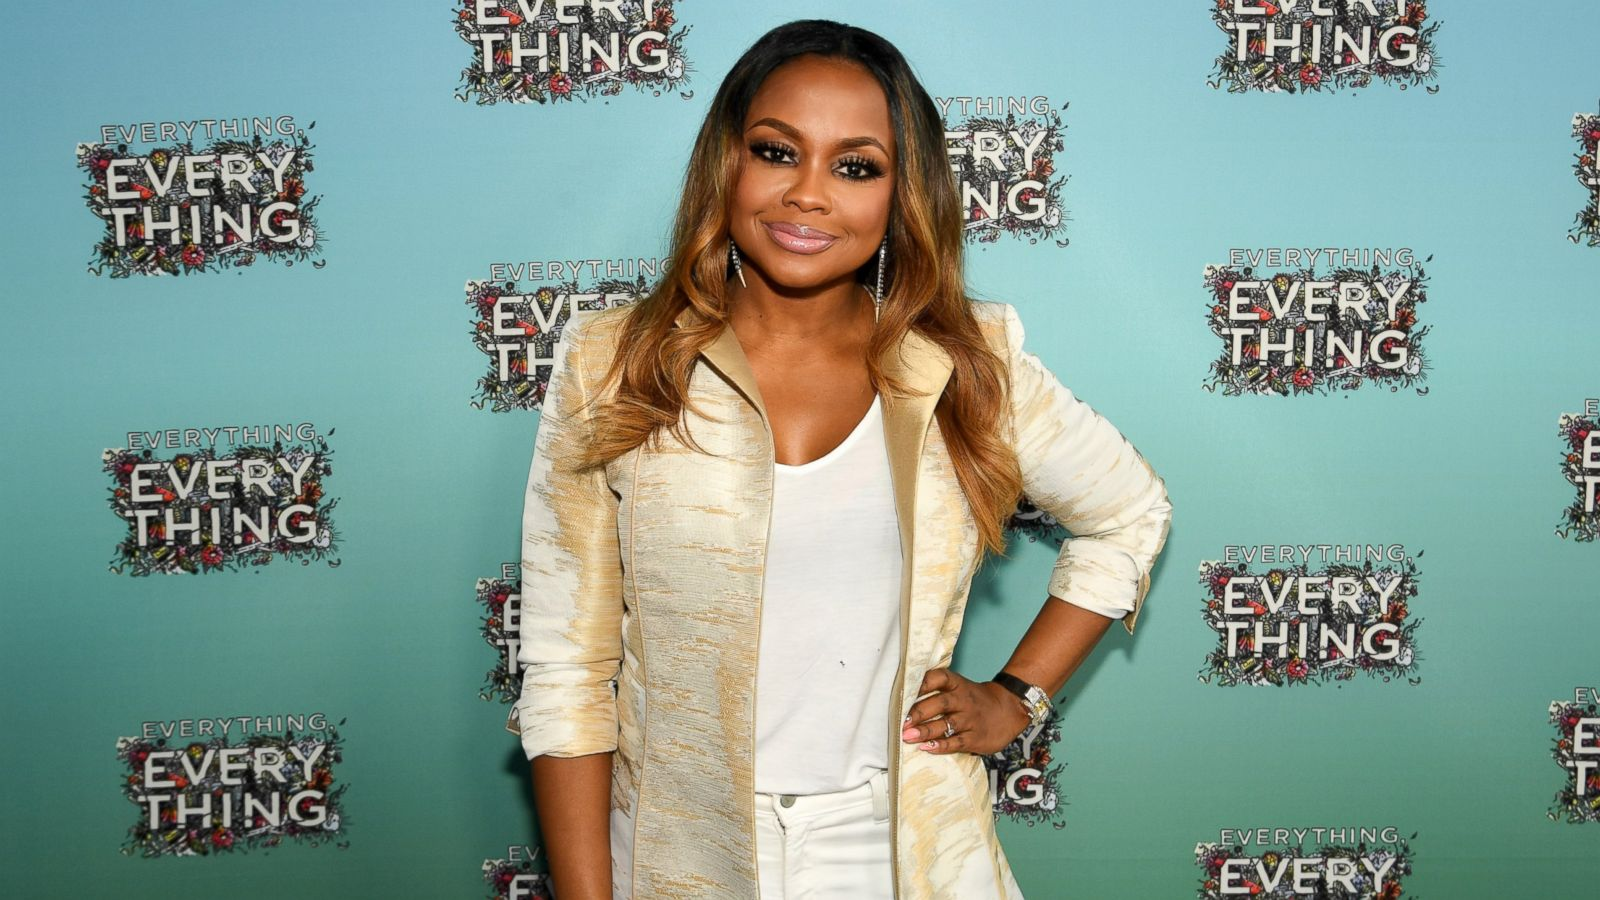 Phaedra Parks Looks Flawless In Her Latest Photo – See The Precious Advice She Gives Women